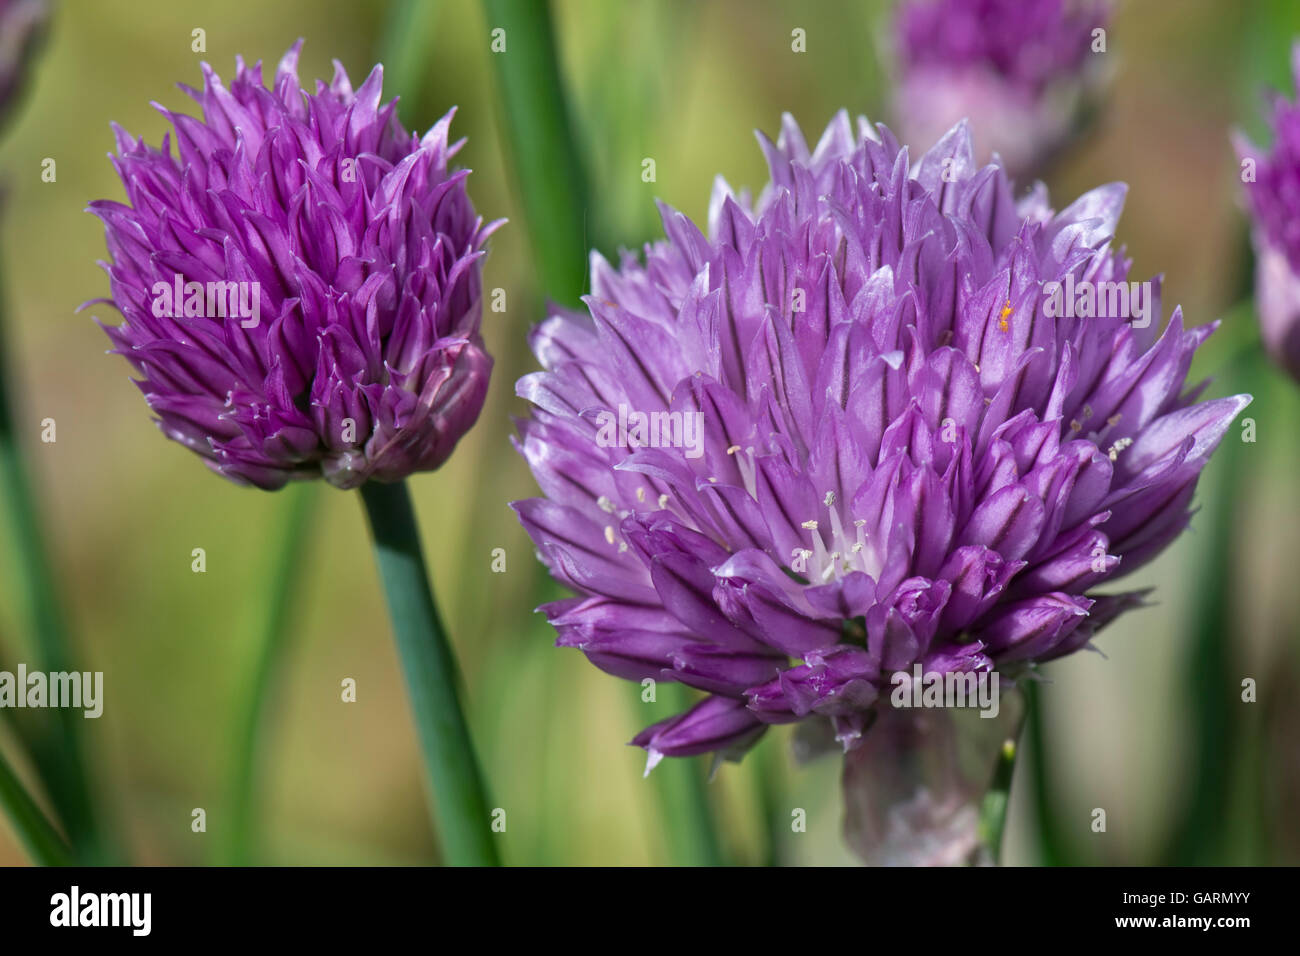 Lilac flower of chives, Allium schoenoprasum, a culinary herd in the onion family, May Stock Photo